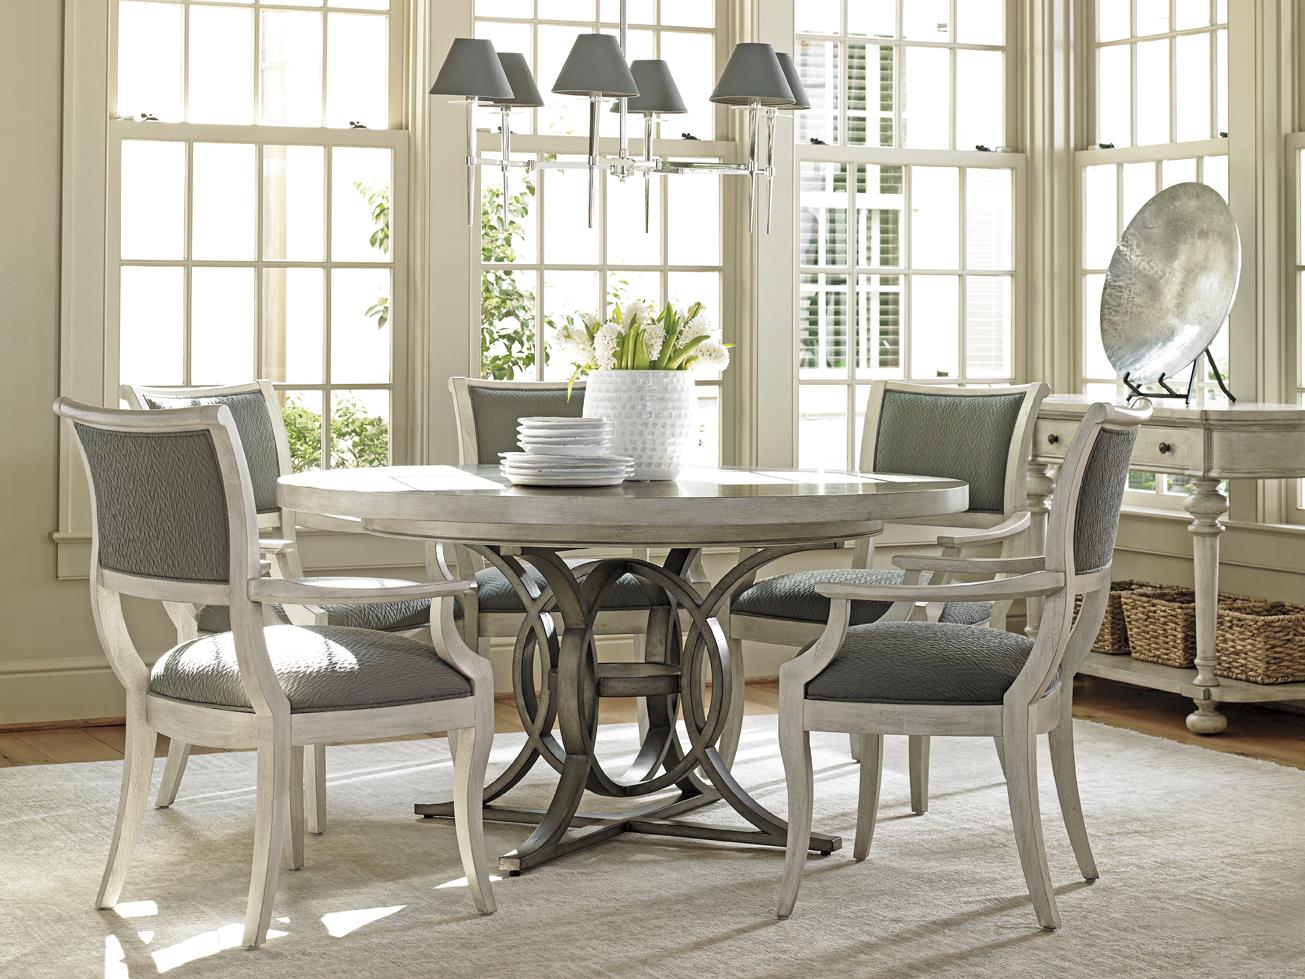 Oyster Bay Dining Room Group by Lexington at Johnny Janosik